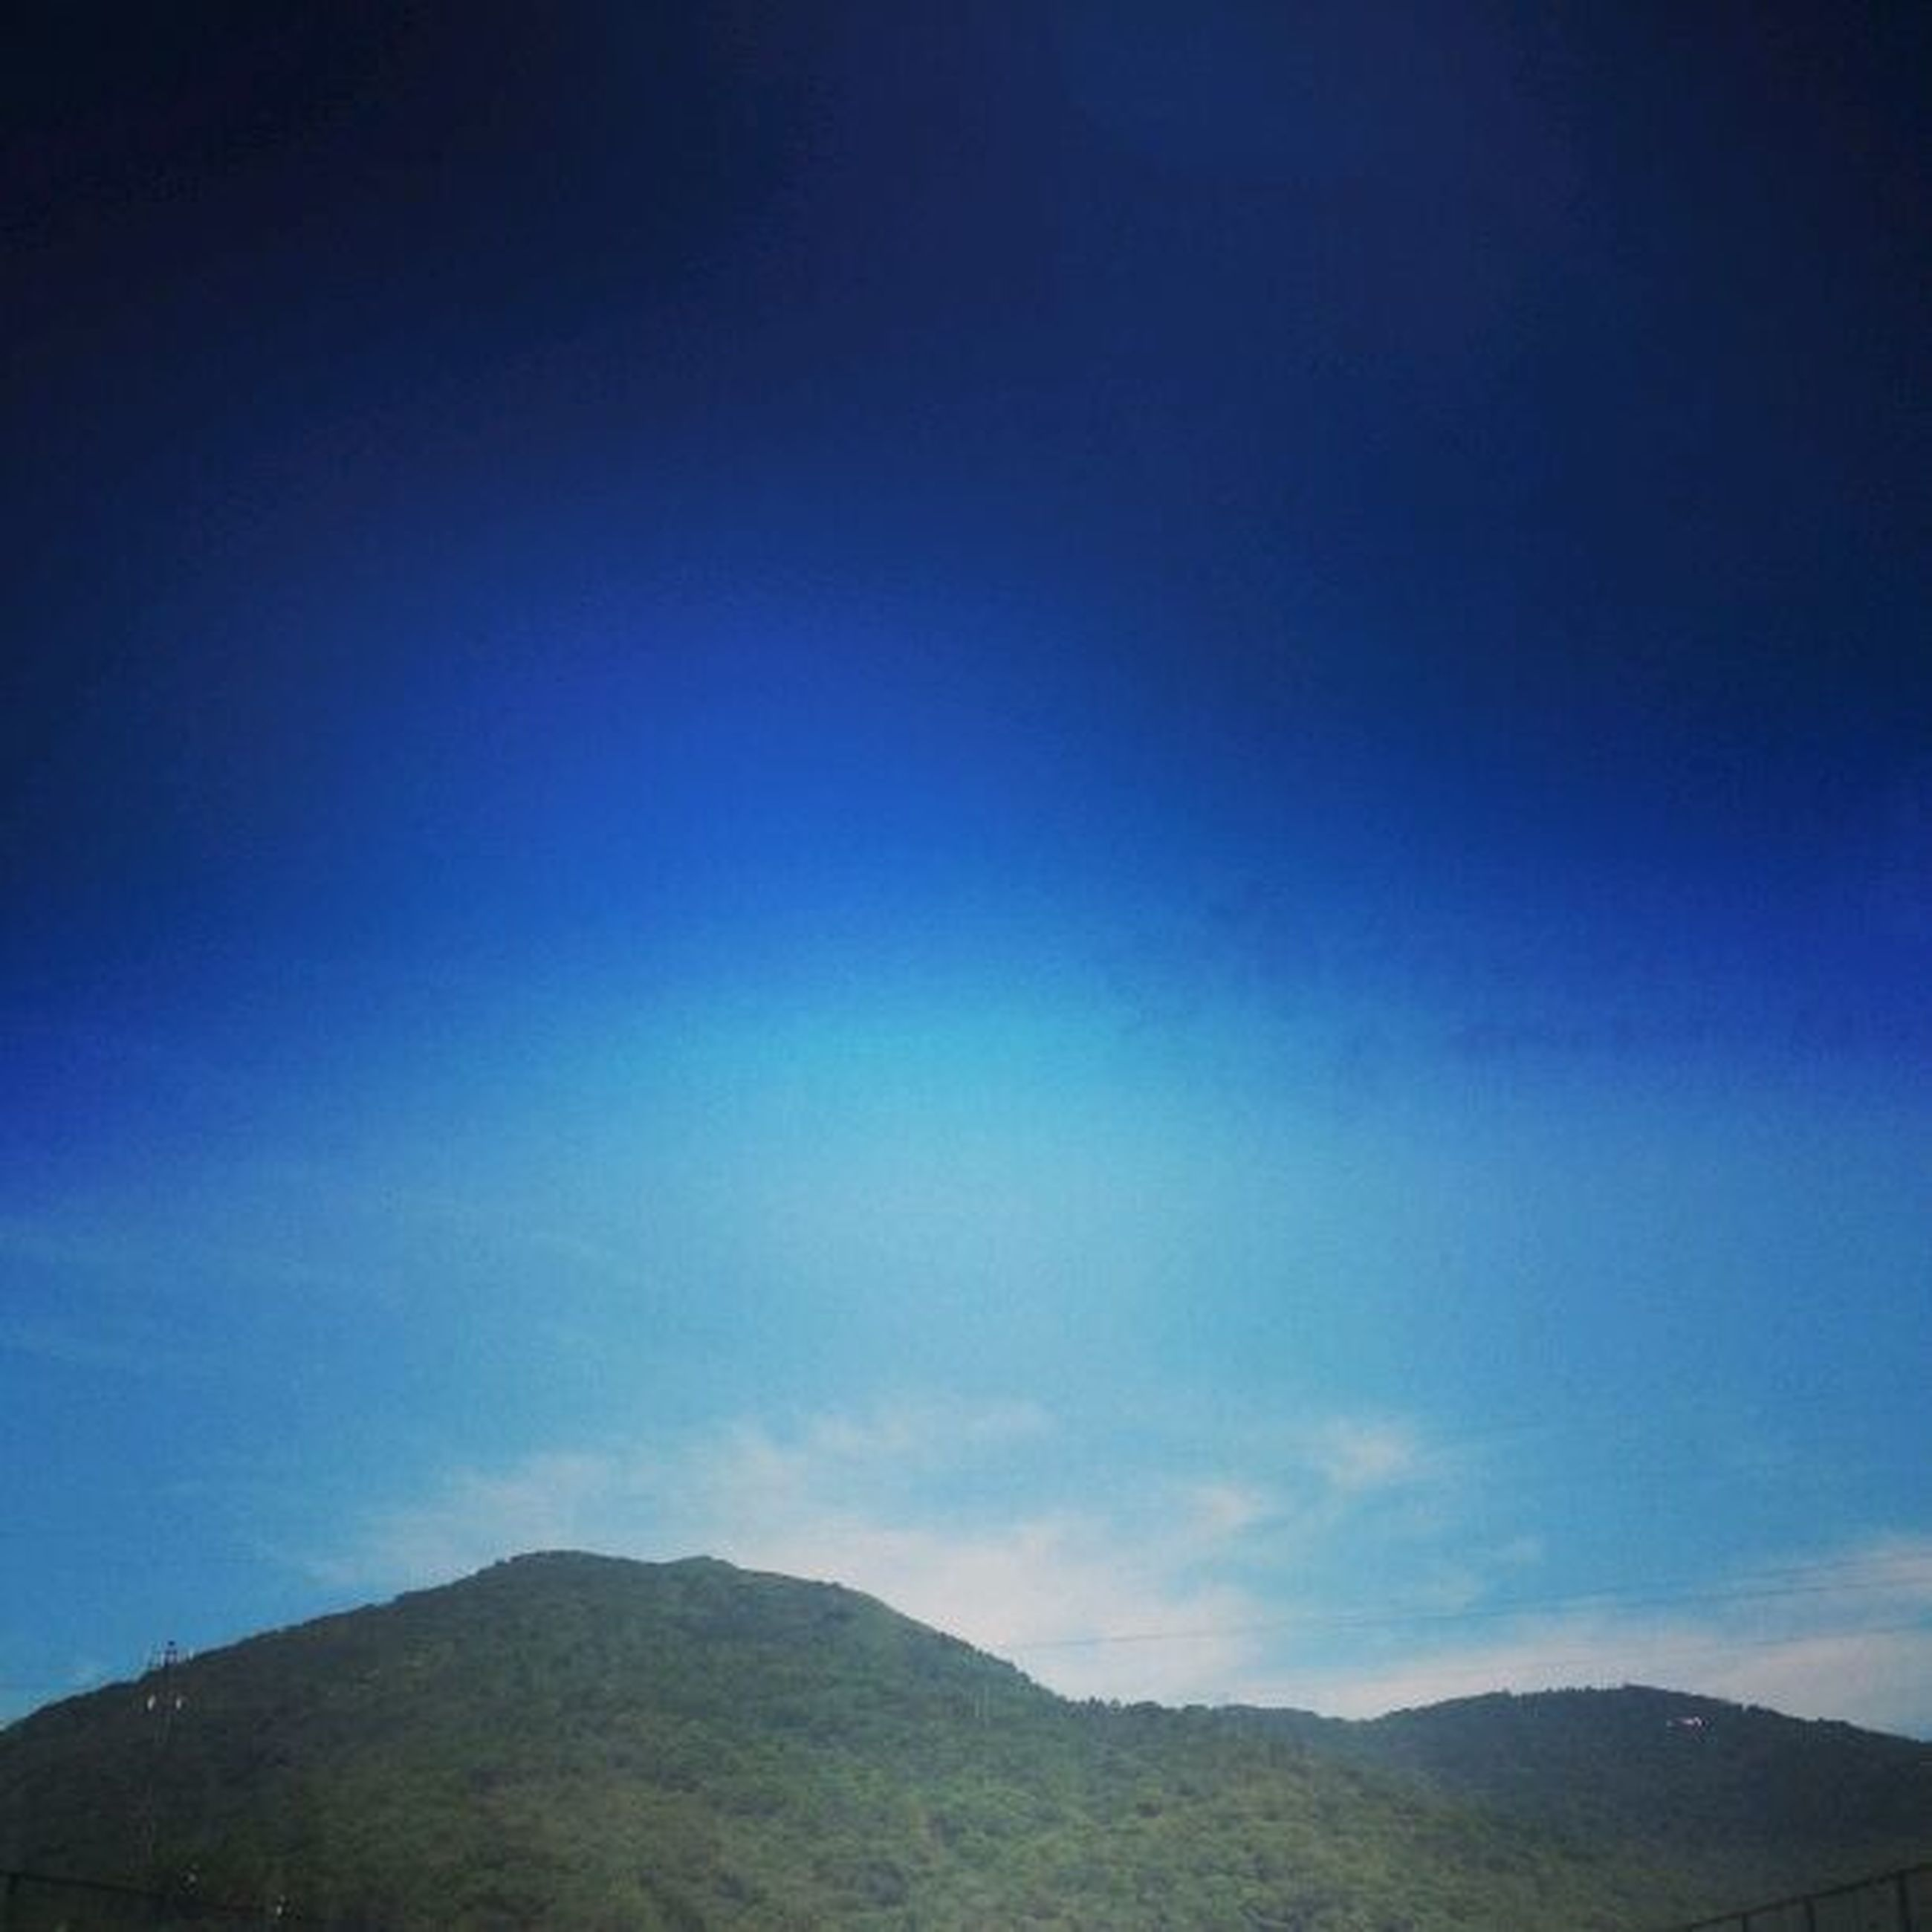 blue, mountain, tranquil scene, tranquility, scenics, beauty in nature, sky, mountain range, landscape, nature, copy space, idyllic, non-urban scene, low angle view, outdoors, remote, day, no people, cloud, cloud - sky